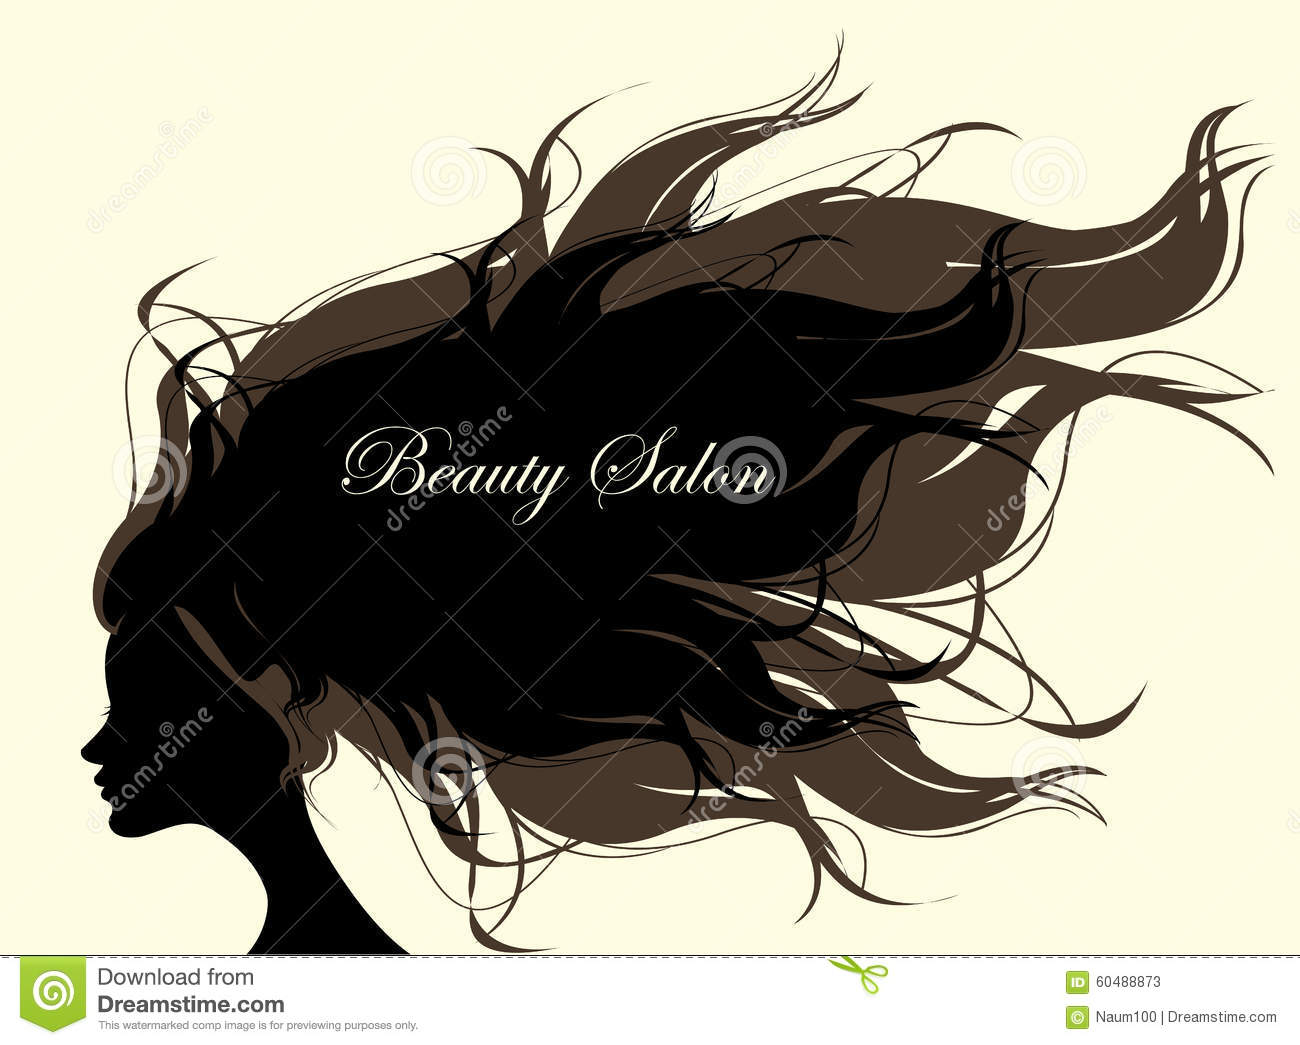 Fashion Beauty Salon: Vector Illustration Of Girl With Long Hair. Woman Model